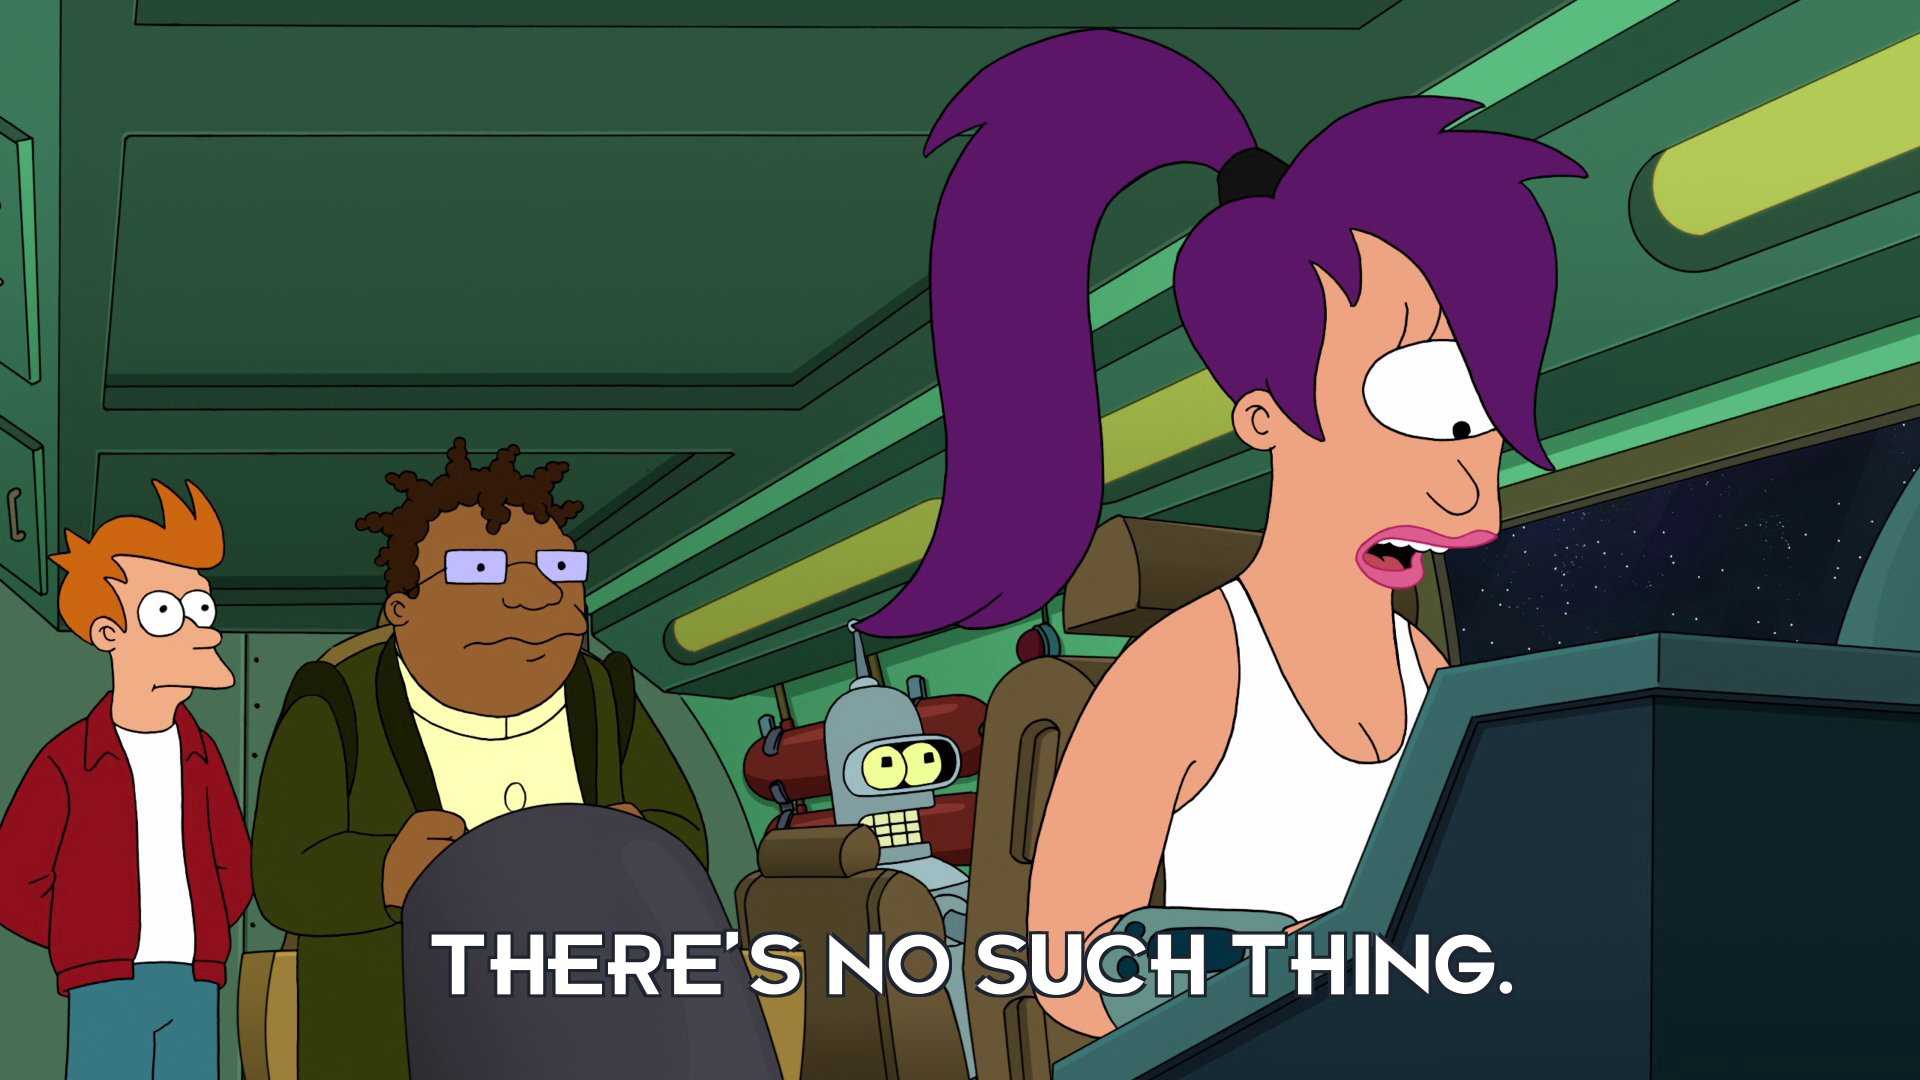 Turanga Leela: There's no such thing.